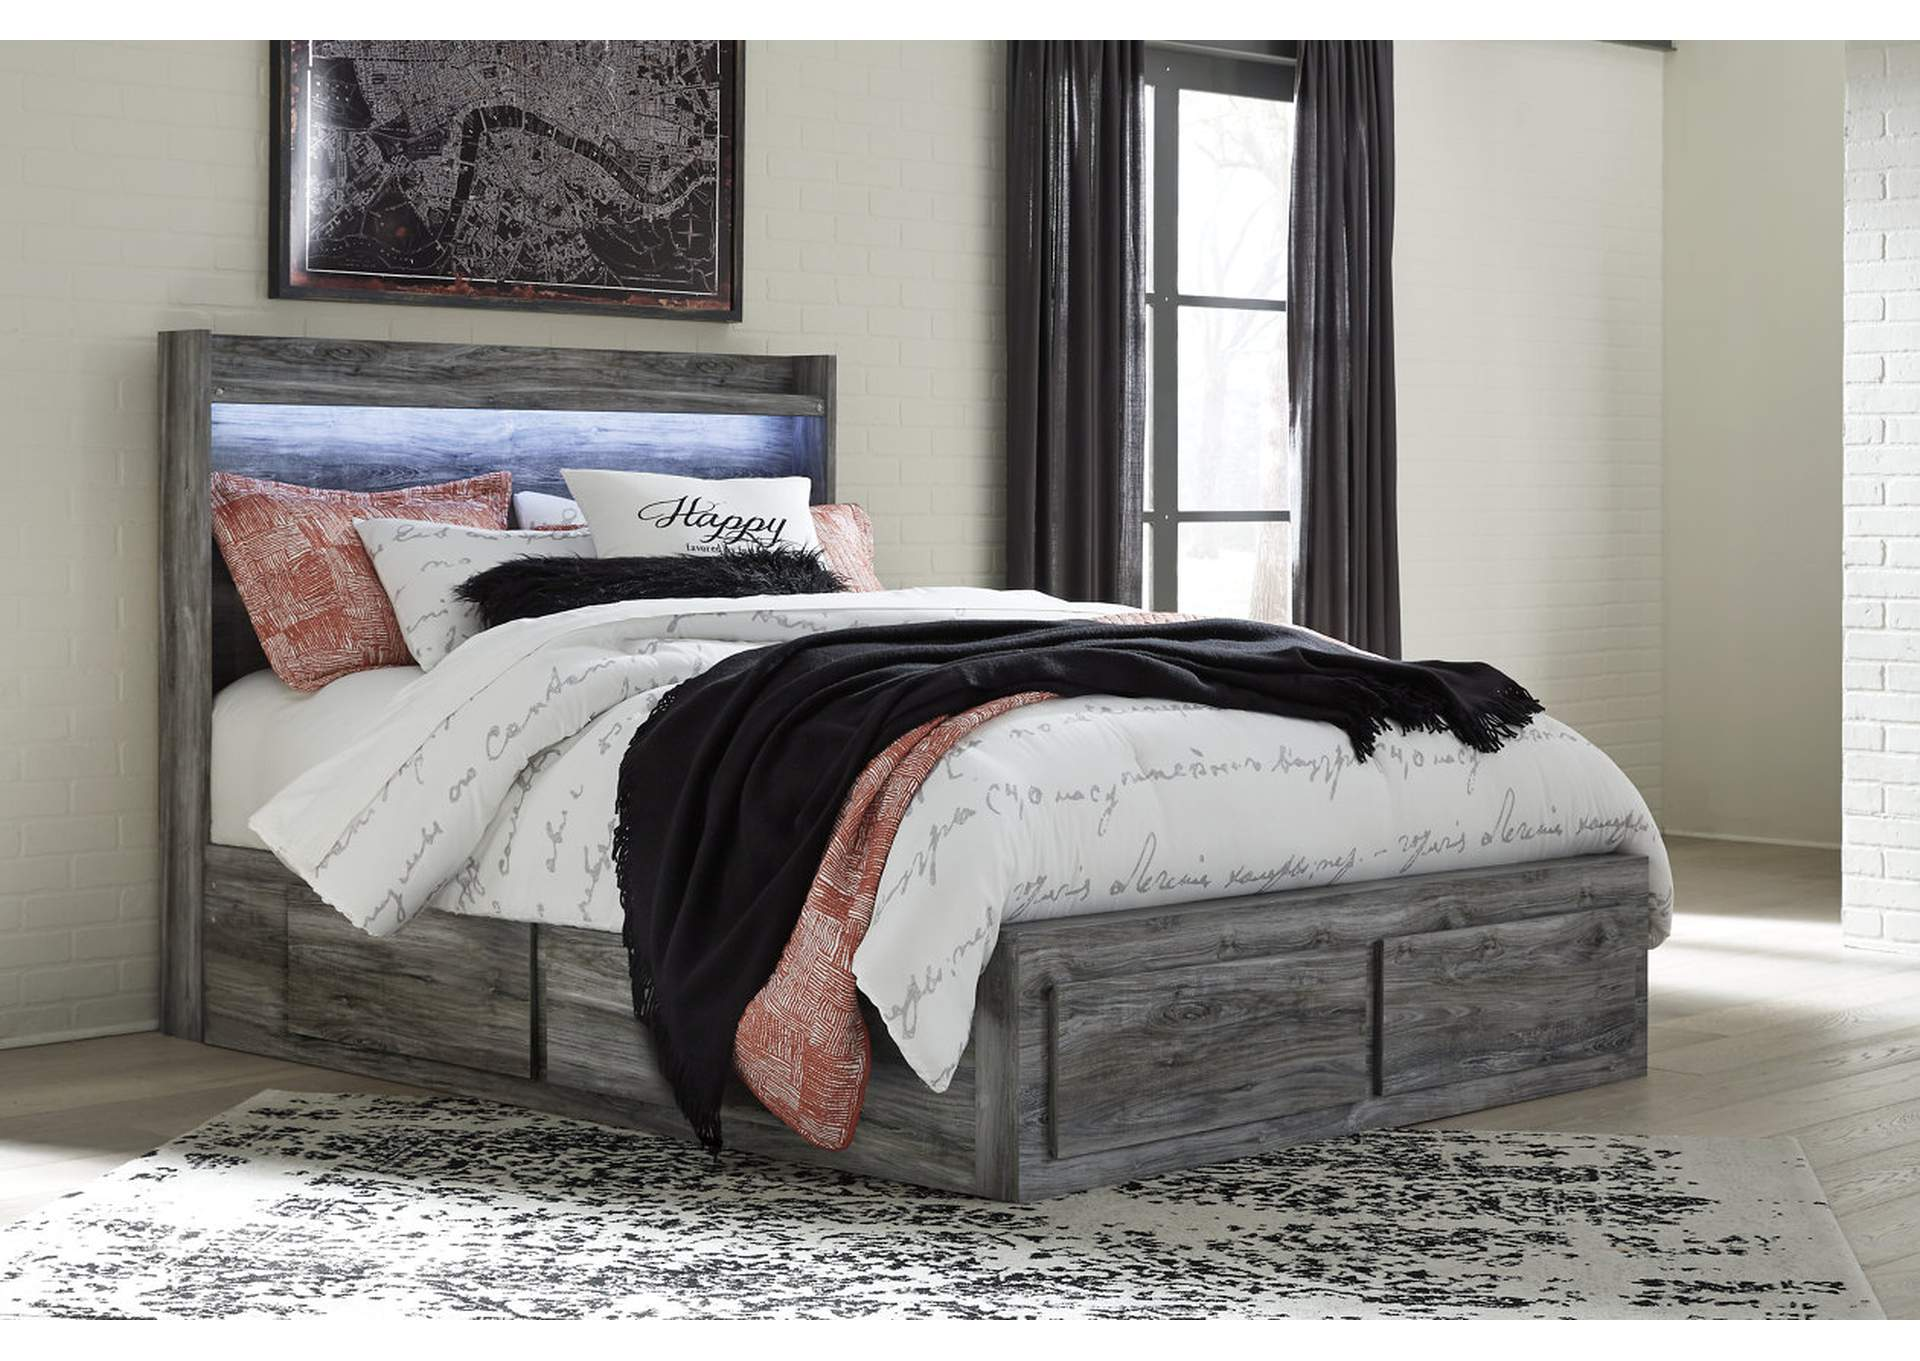 Baystorm Gray Queen Storage Bed,Signature Design By Ashley